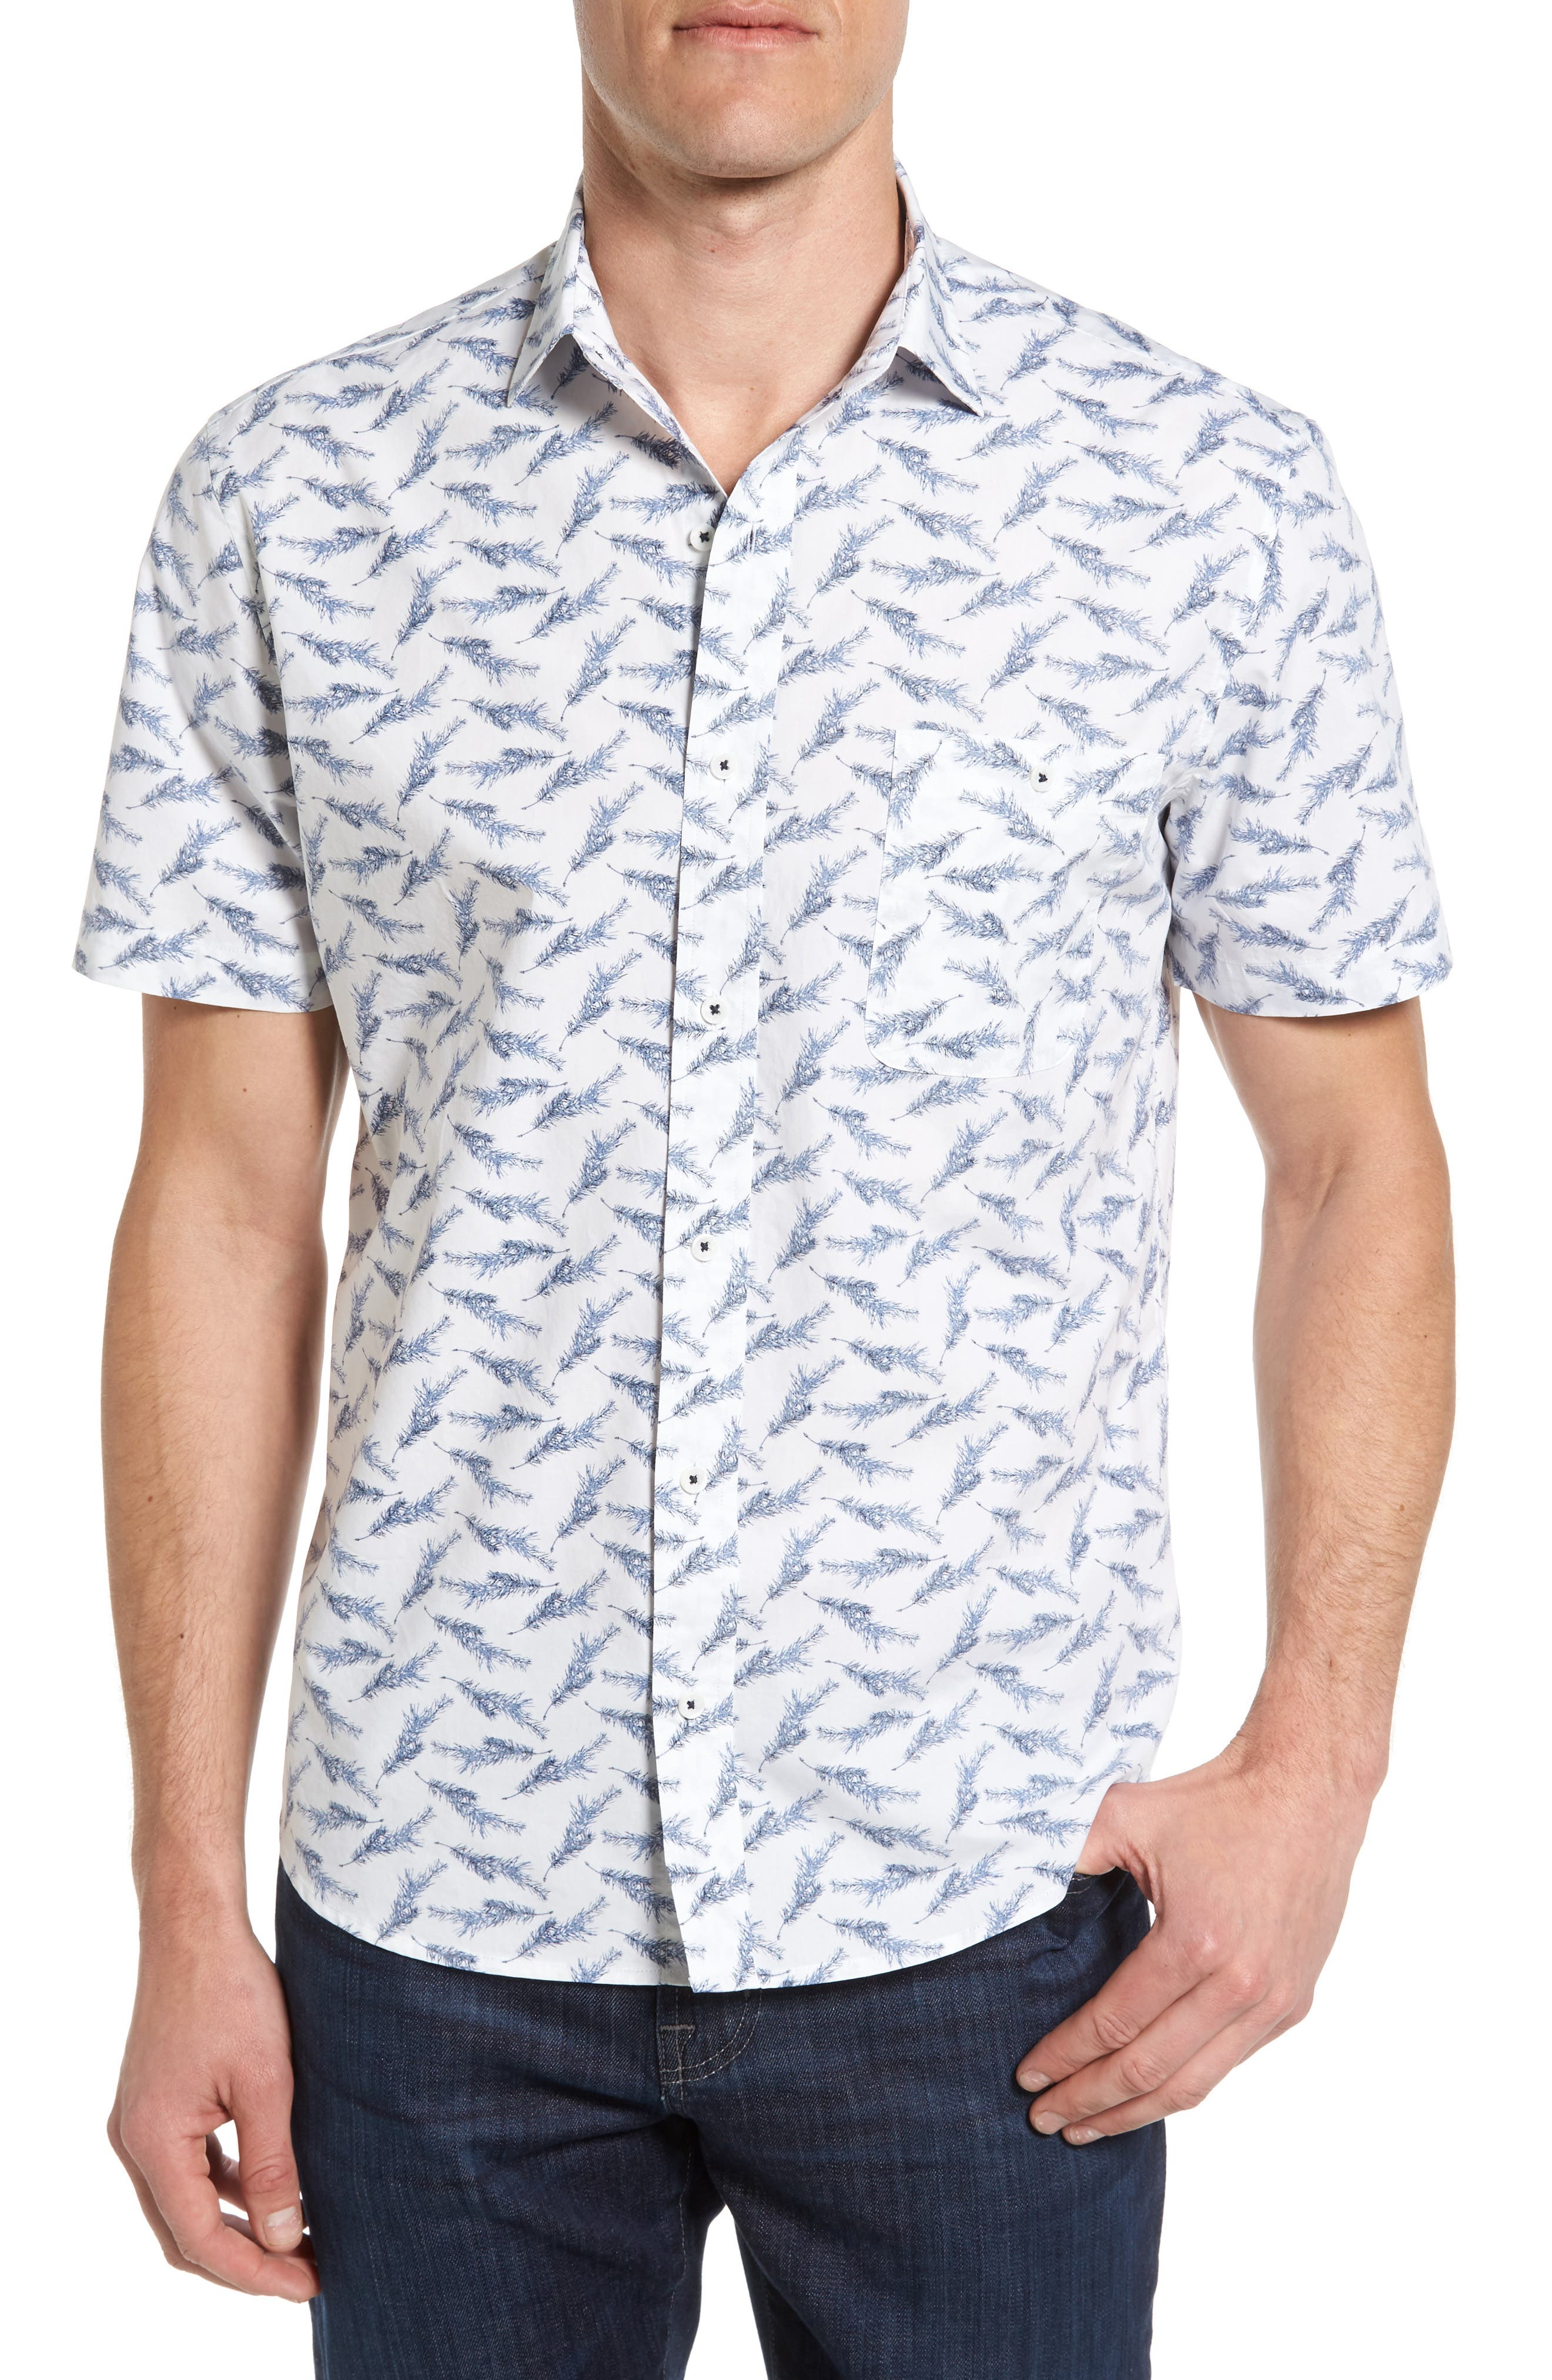 Maker & Company Tailored Fit Feather Print Sport Shirt